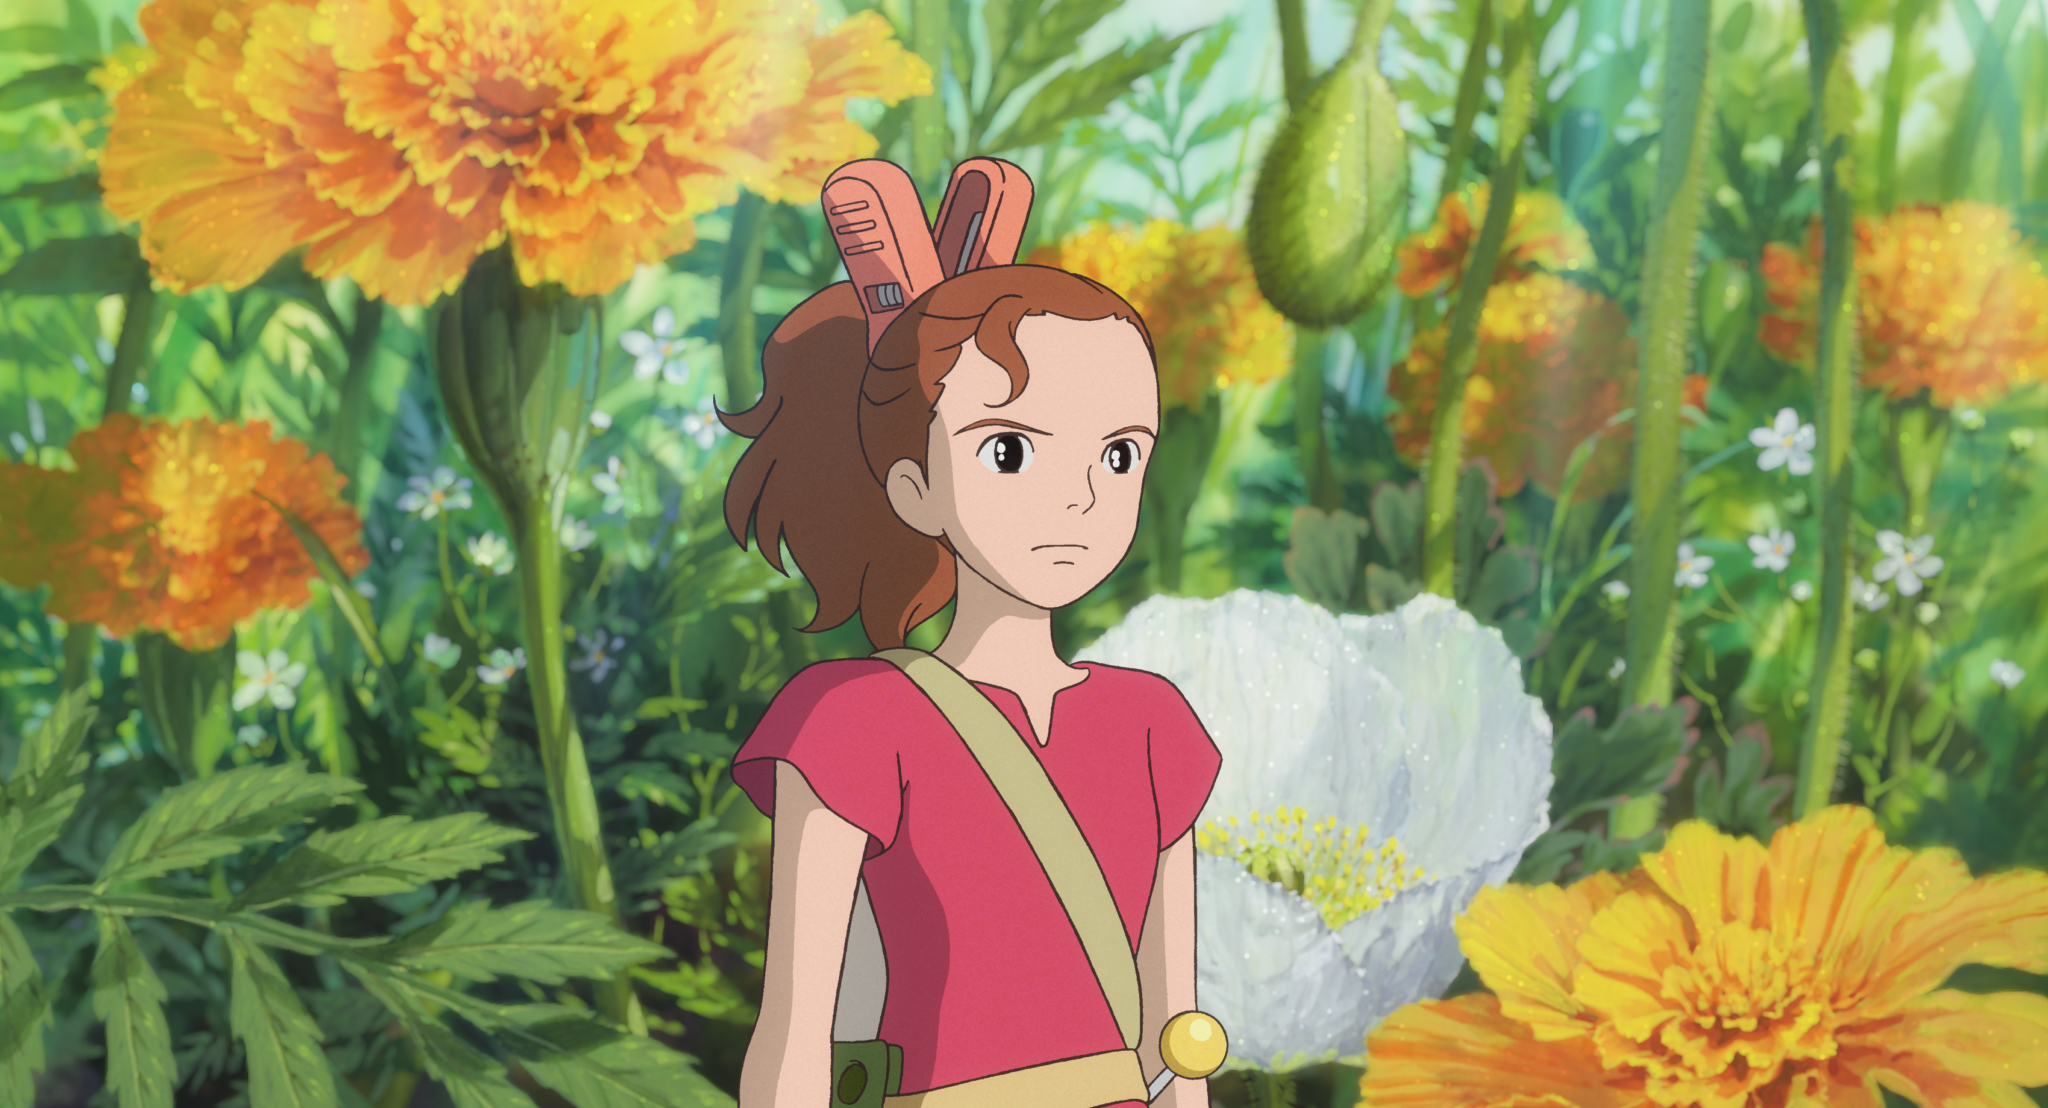 The pint-sized Arrietty shows her determination in a scene from the 2010 theatrical anime film The Secret World of Arrietty, distributed in the U.S. by GKIDS.